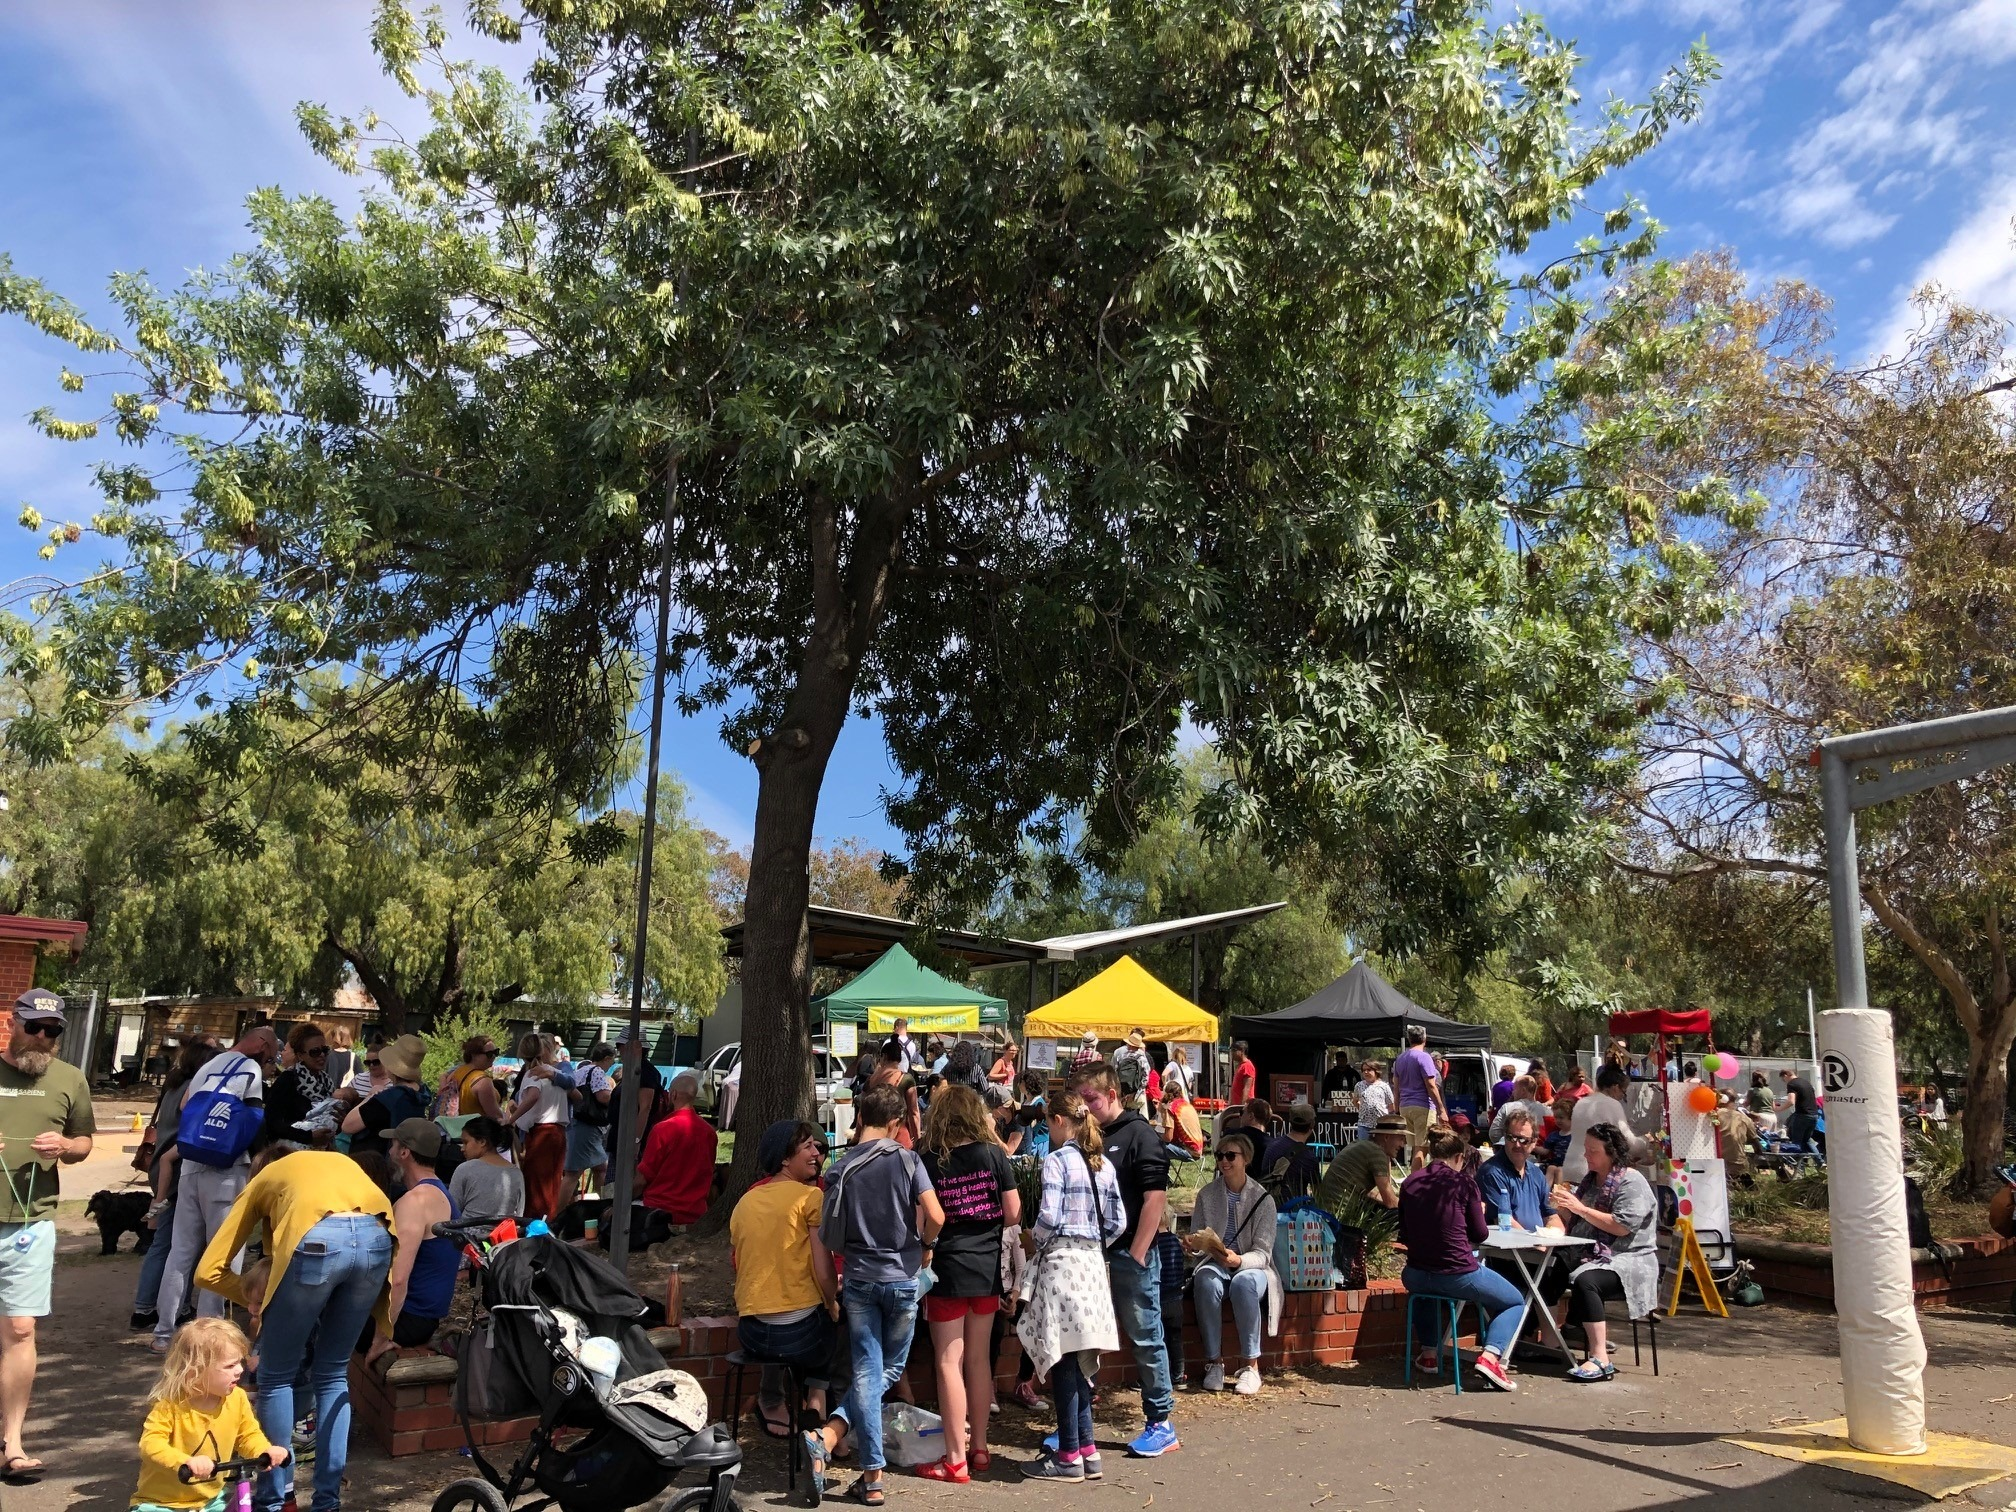 Crowd of people gathering around market stalls under a large tree